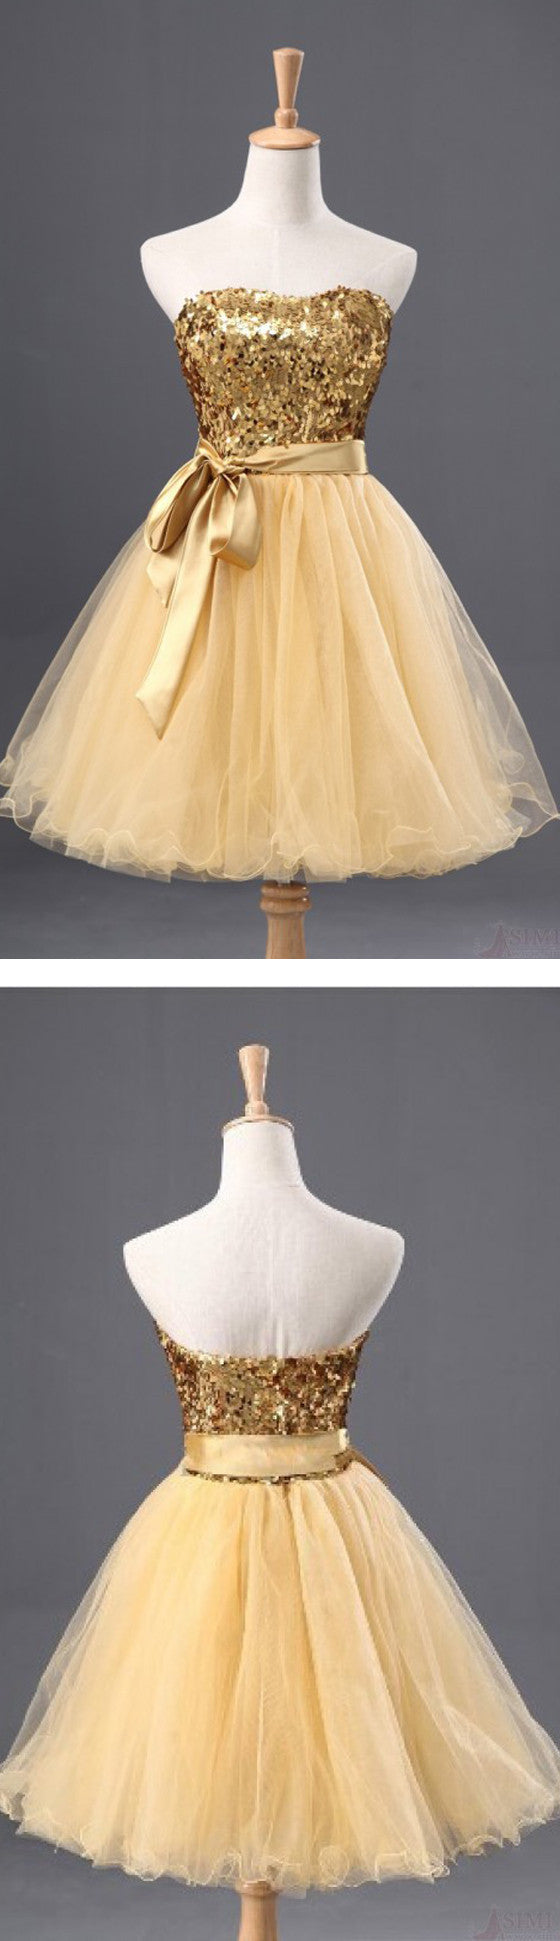 Fashion Gold Sequins Bow Sash Sweetheart Strapless Short Cute Homecoming Prom Dresses, CM0029